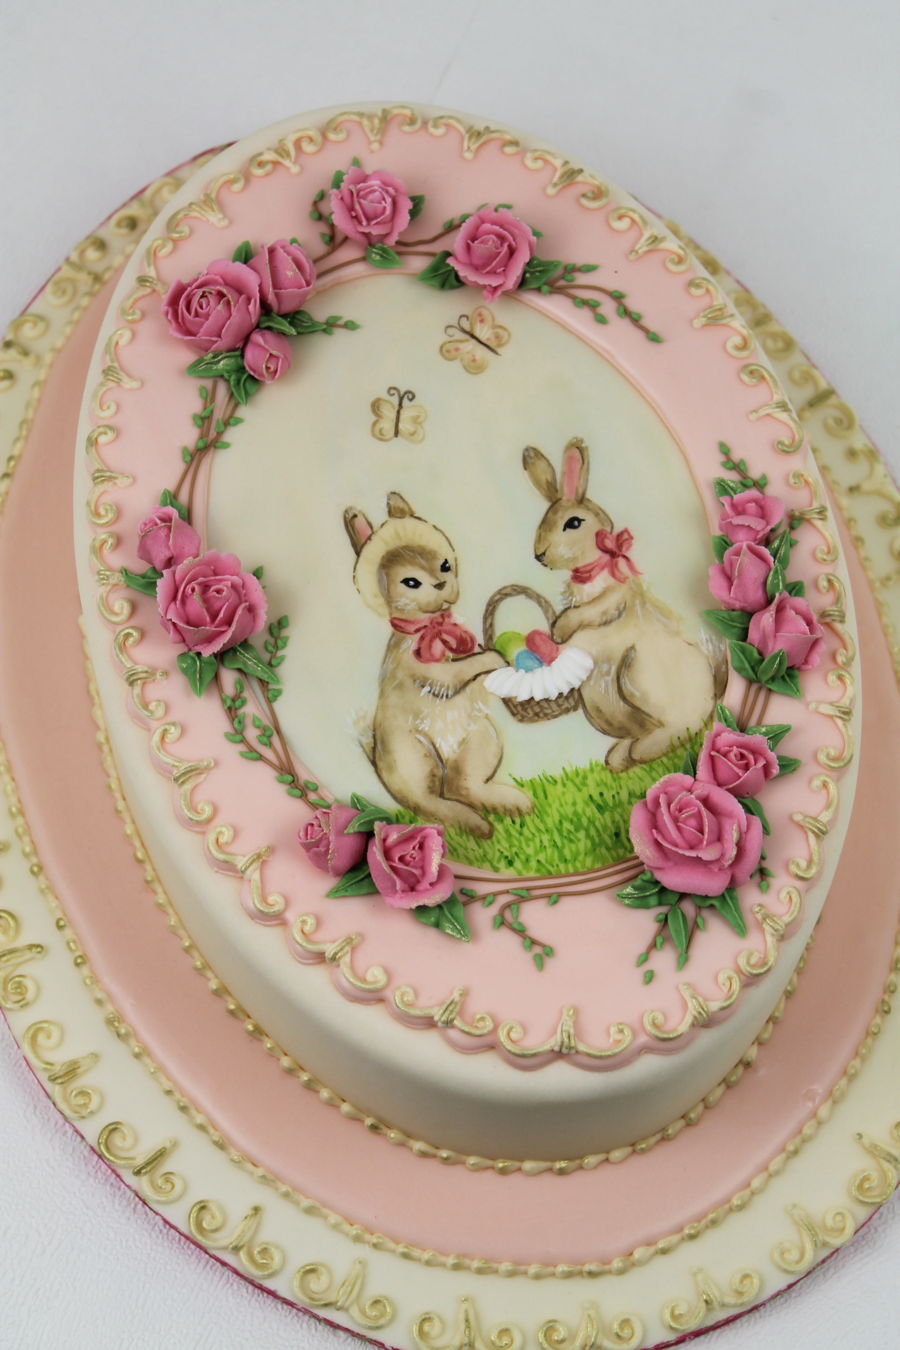 Easter Cake Decorating Recipes : French Vintage Easter Cake - CakeCentral.com